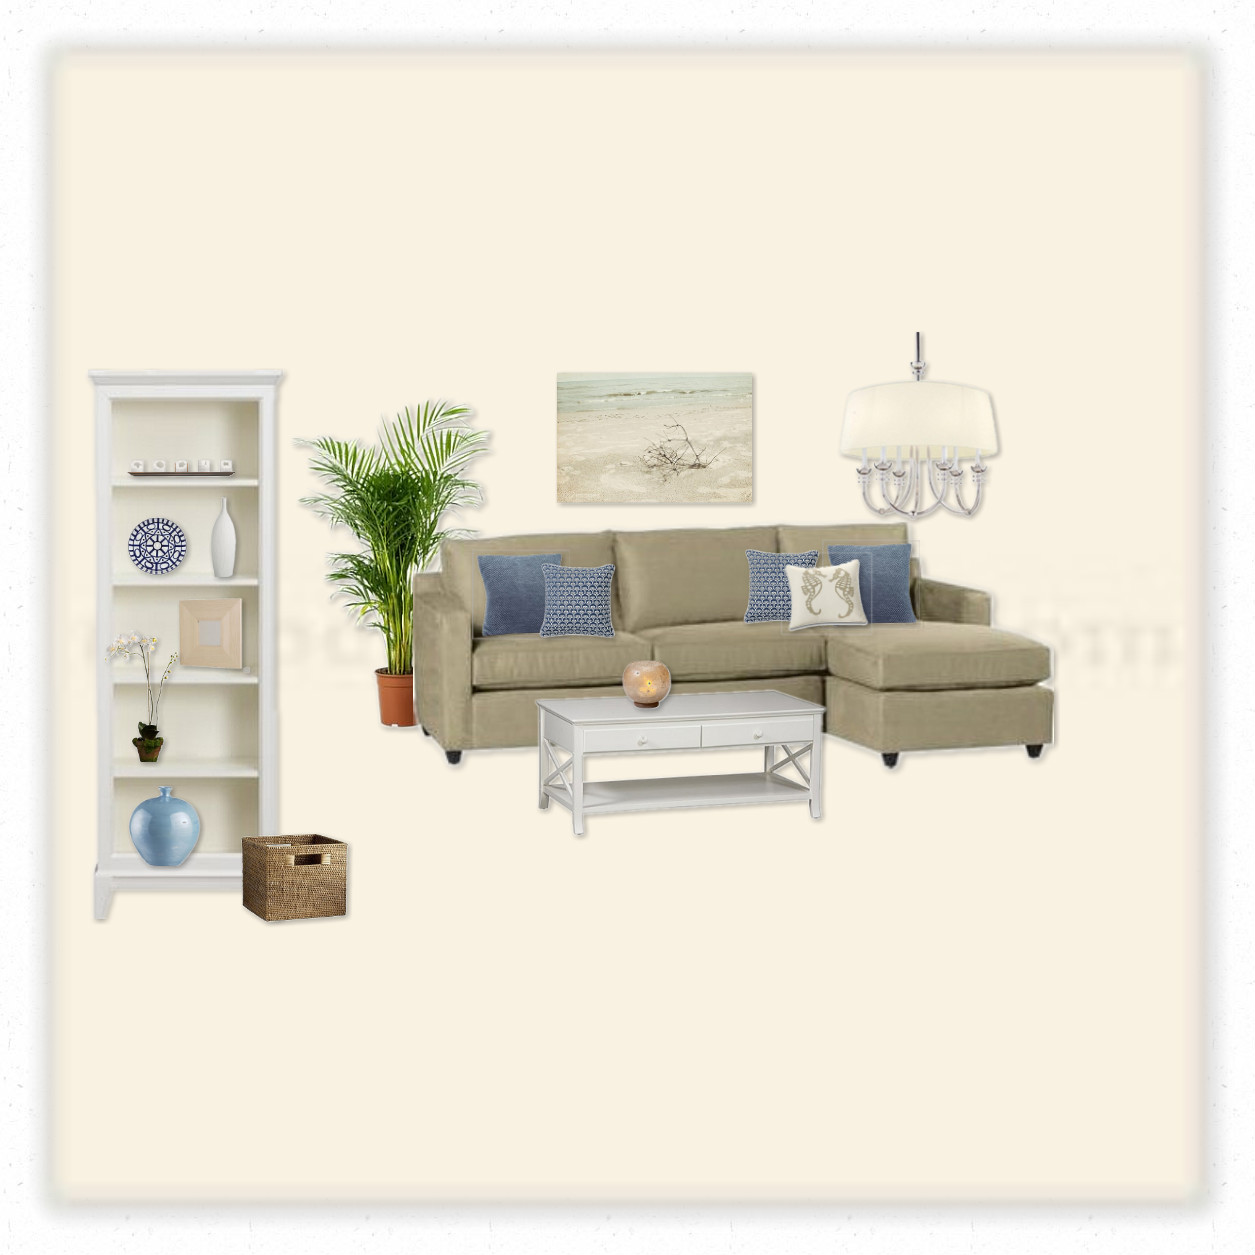 Design my living room online uk living room interior designs for How can i design my room online